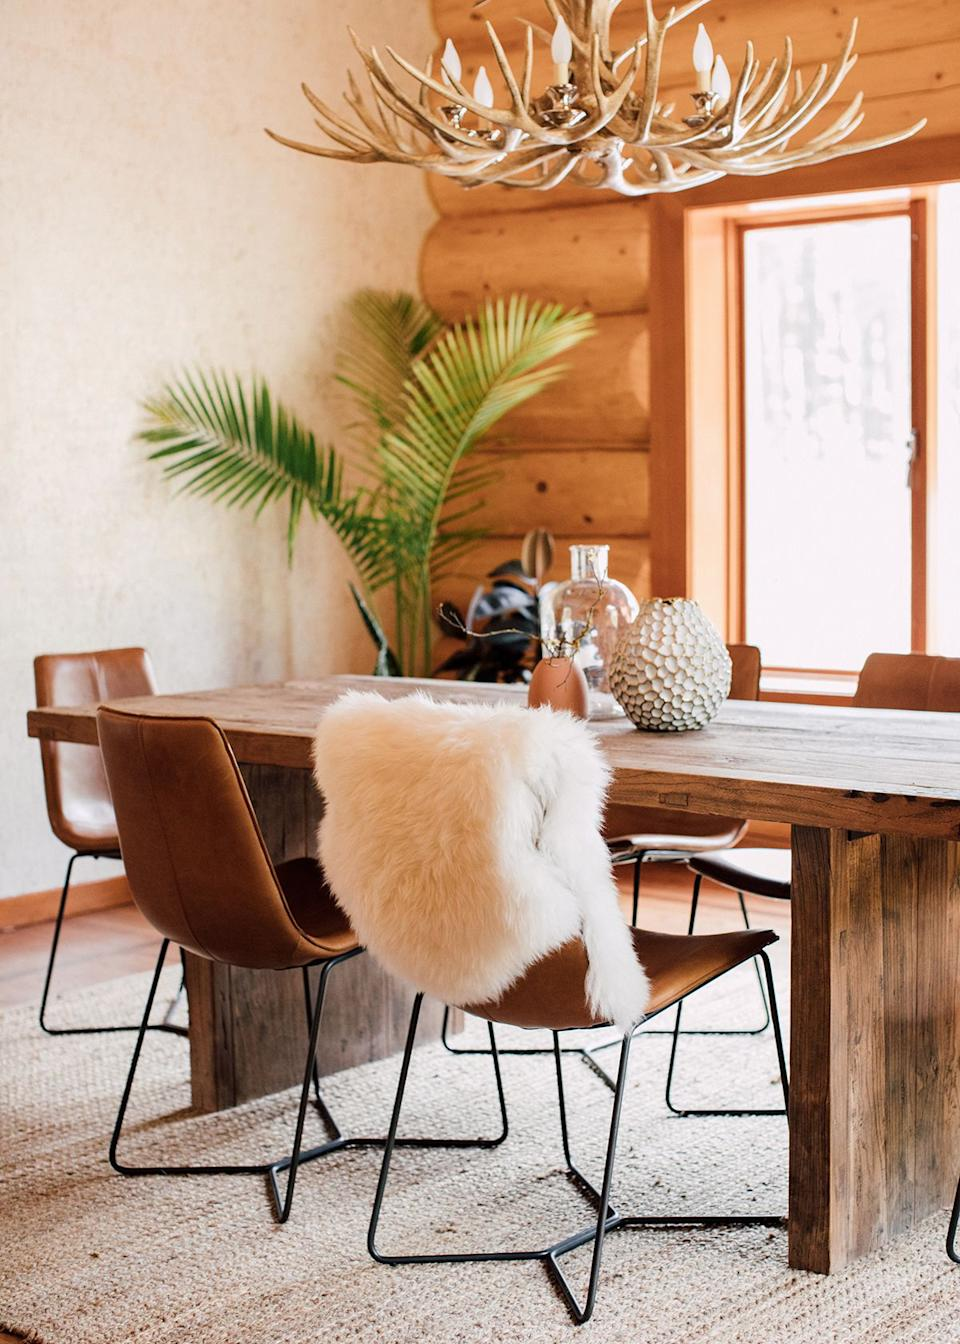 A custom accent wall in the great room, featuring a gorgeous textured cork and gold wallpaper, brings the entire room to life and makes it feel like you're dining in a chic, snow-covered lodge after a long day on the slopes, says Kula.